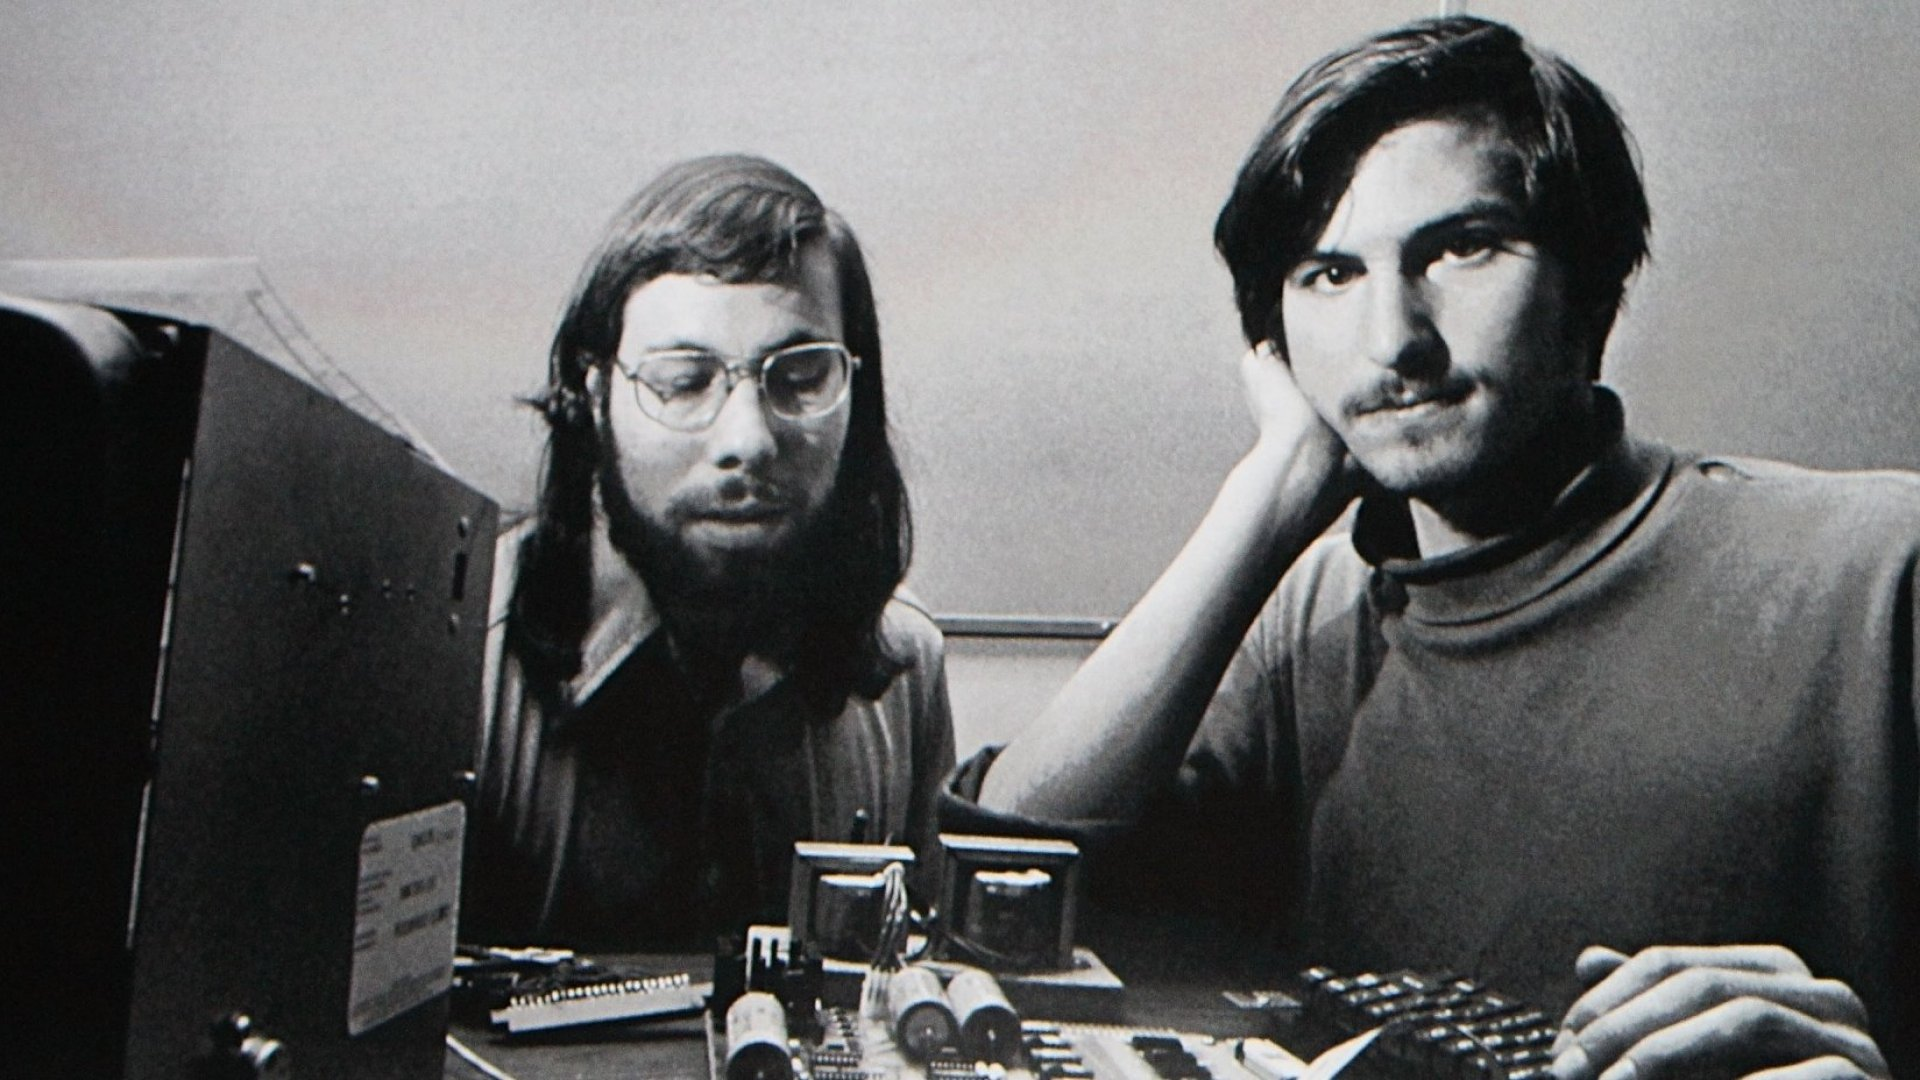 This 1973 Job Application From Steve Jobs Is Worth a Lot of Money. But the Lesson It Teaches Is Priceless